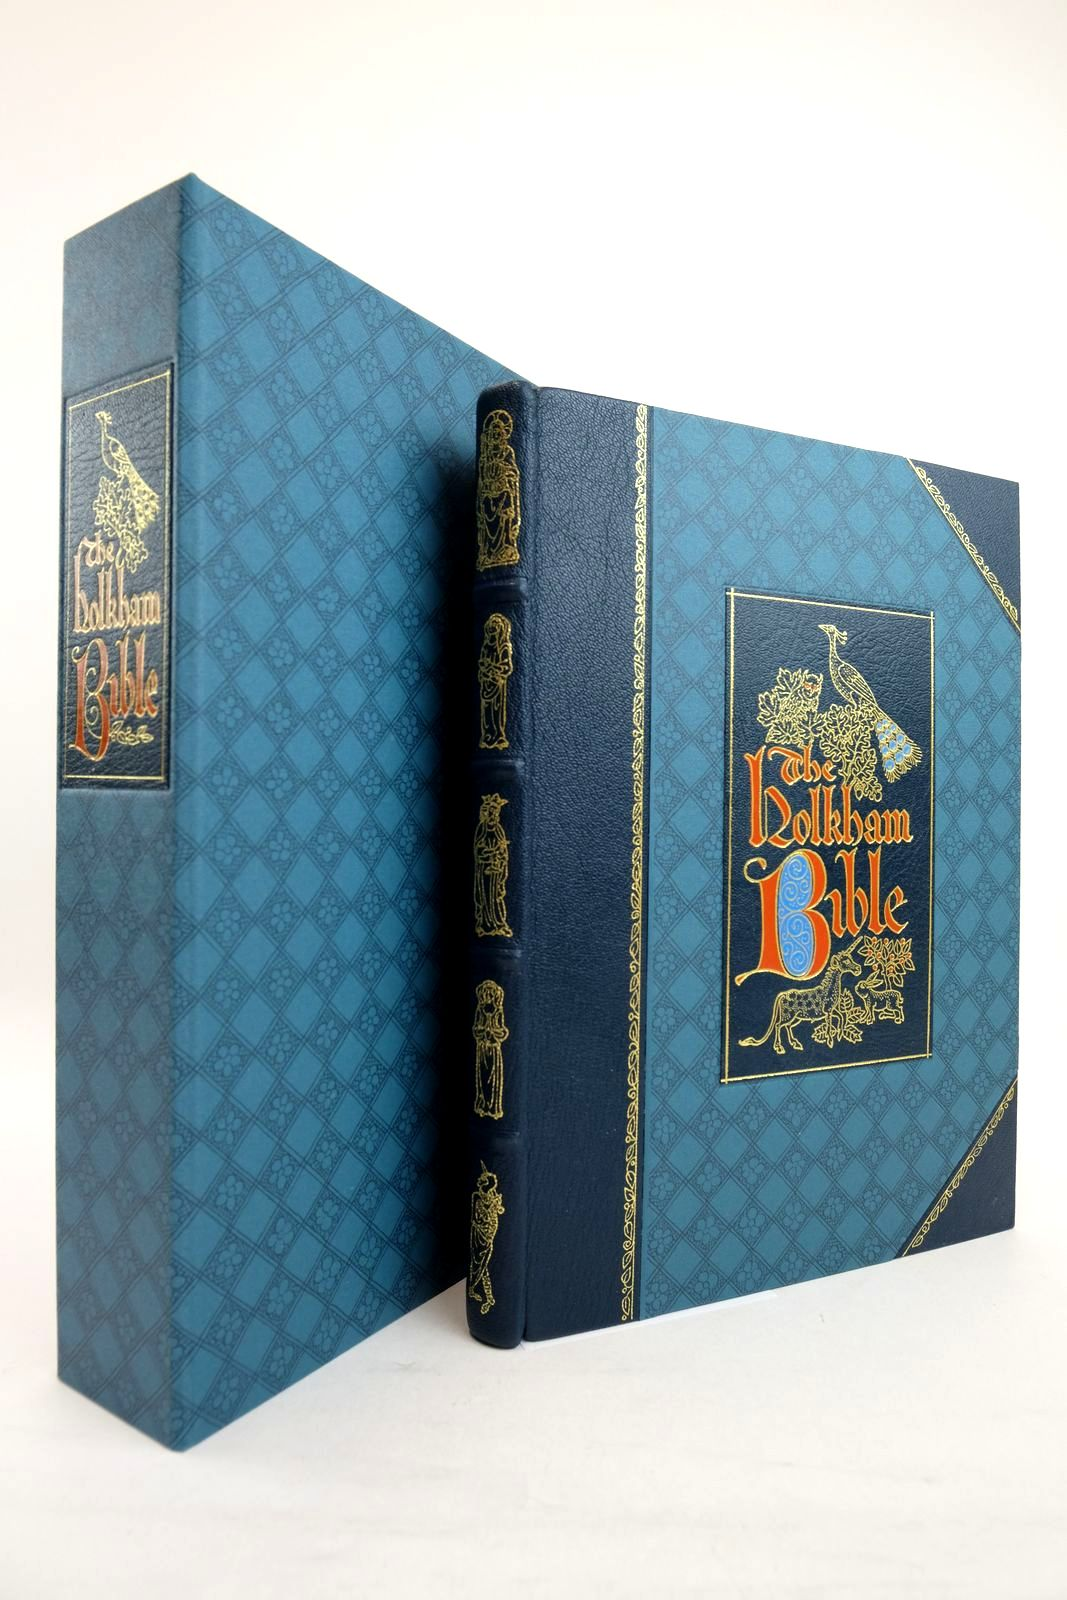 Photo of THE HOLKHAM BIBLE written by Brown, Michelle P. published by Folio Society (STOCK CODE: 2134457)  for sale by Stella & Rose's Books